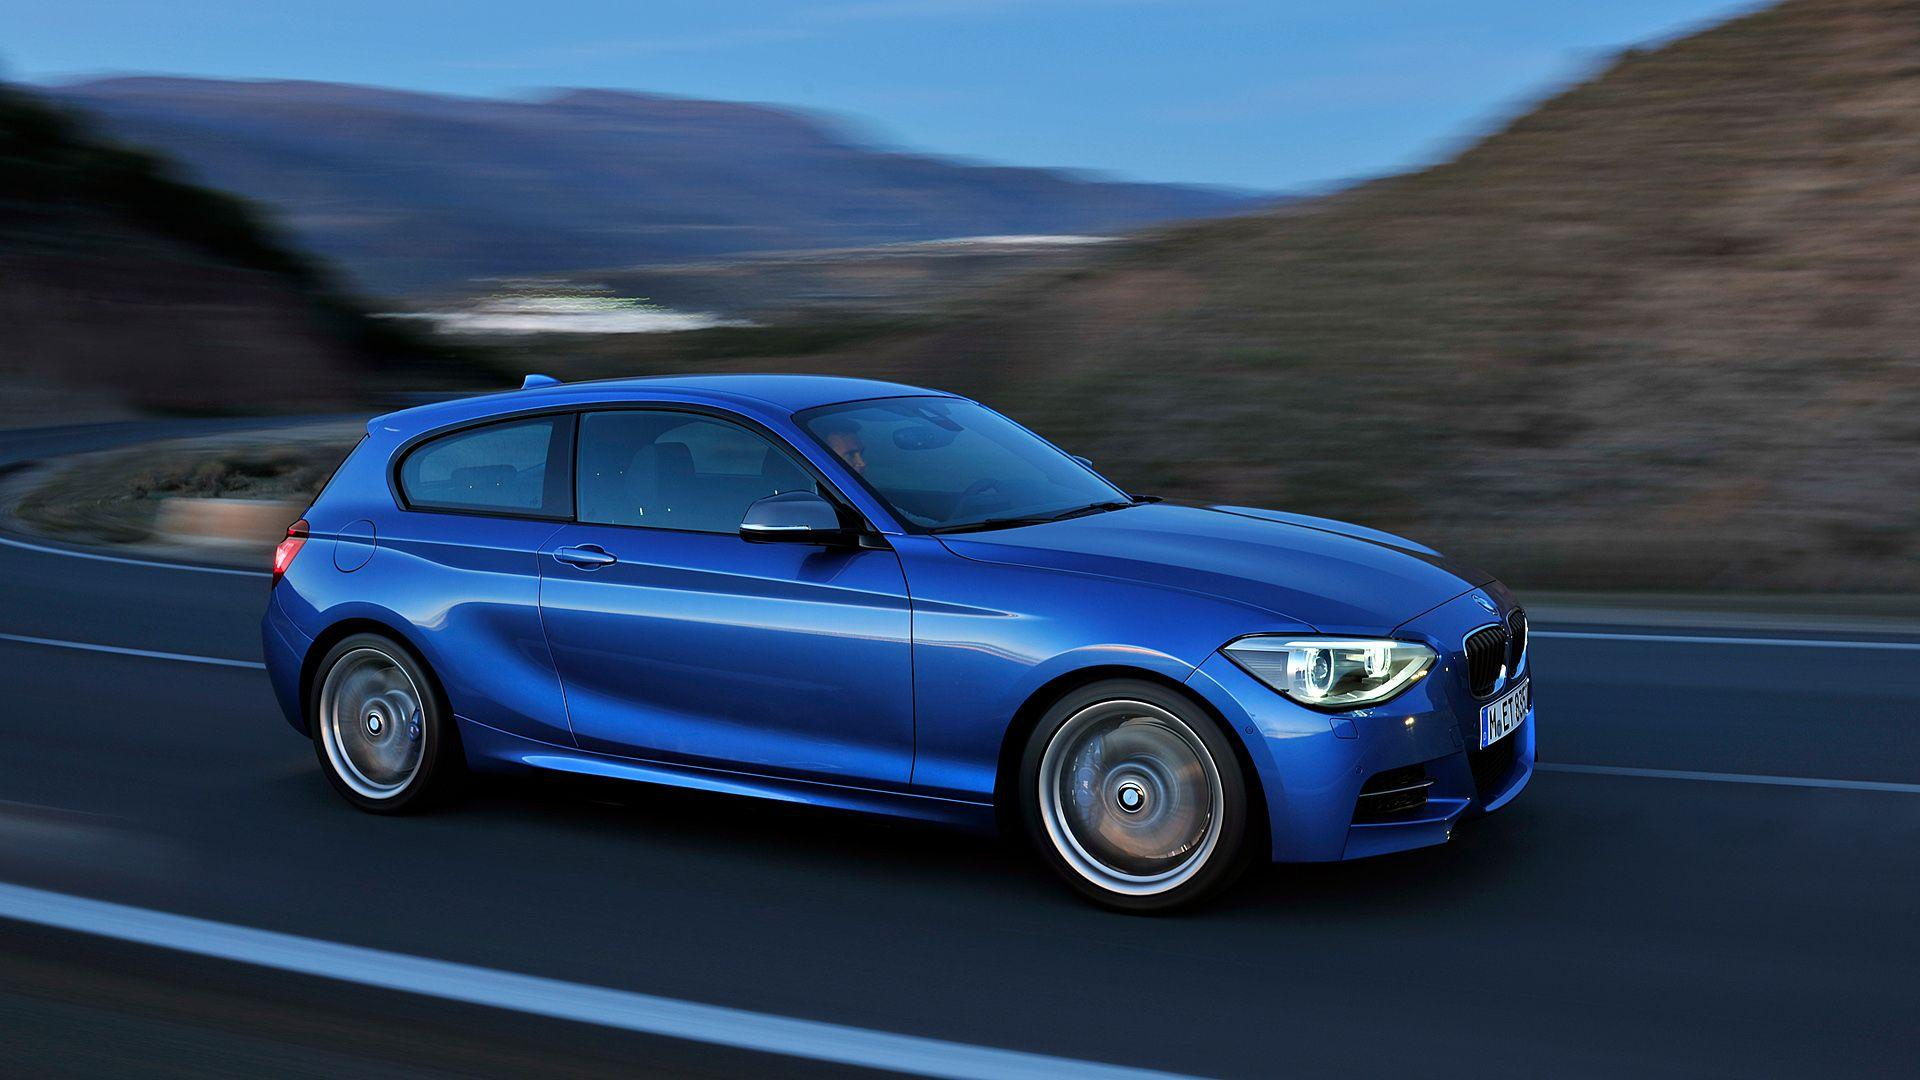 2013 BMW M135i Wallpapers & HD Images - WSupercars